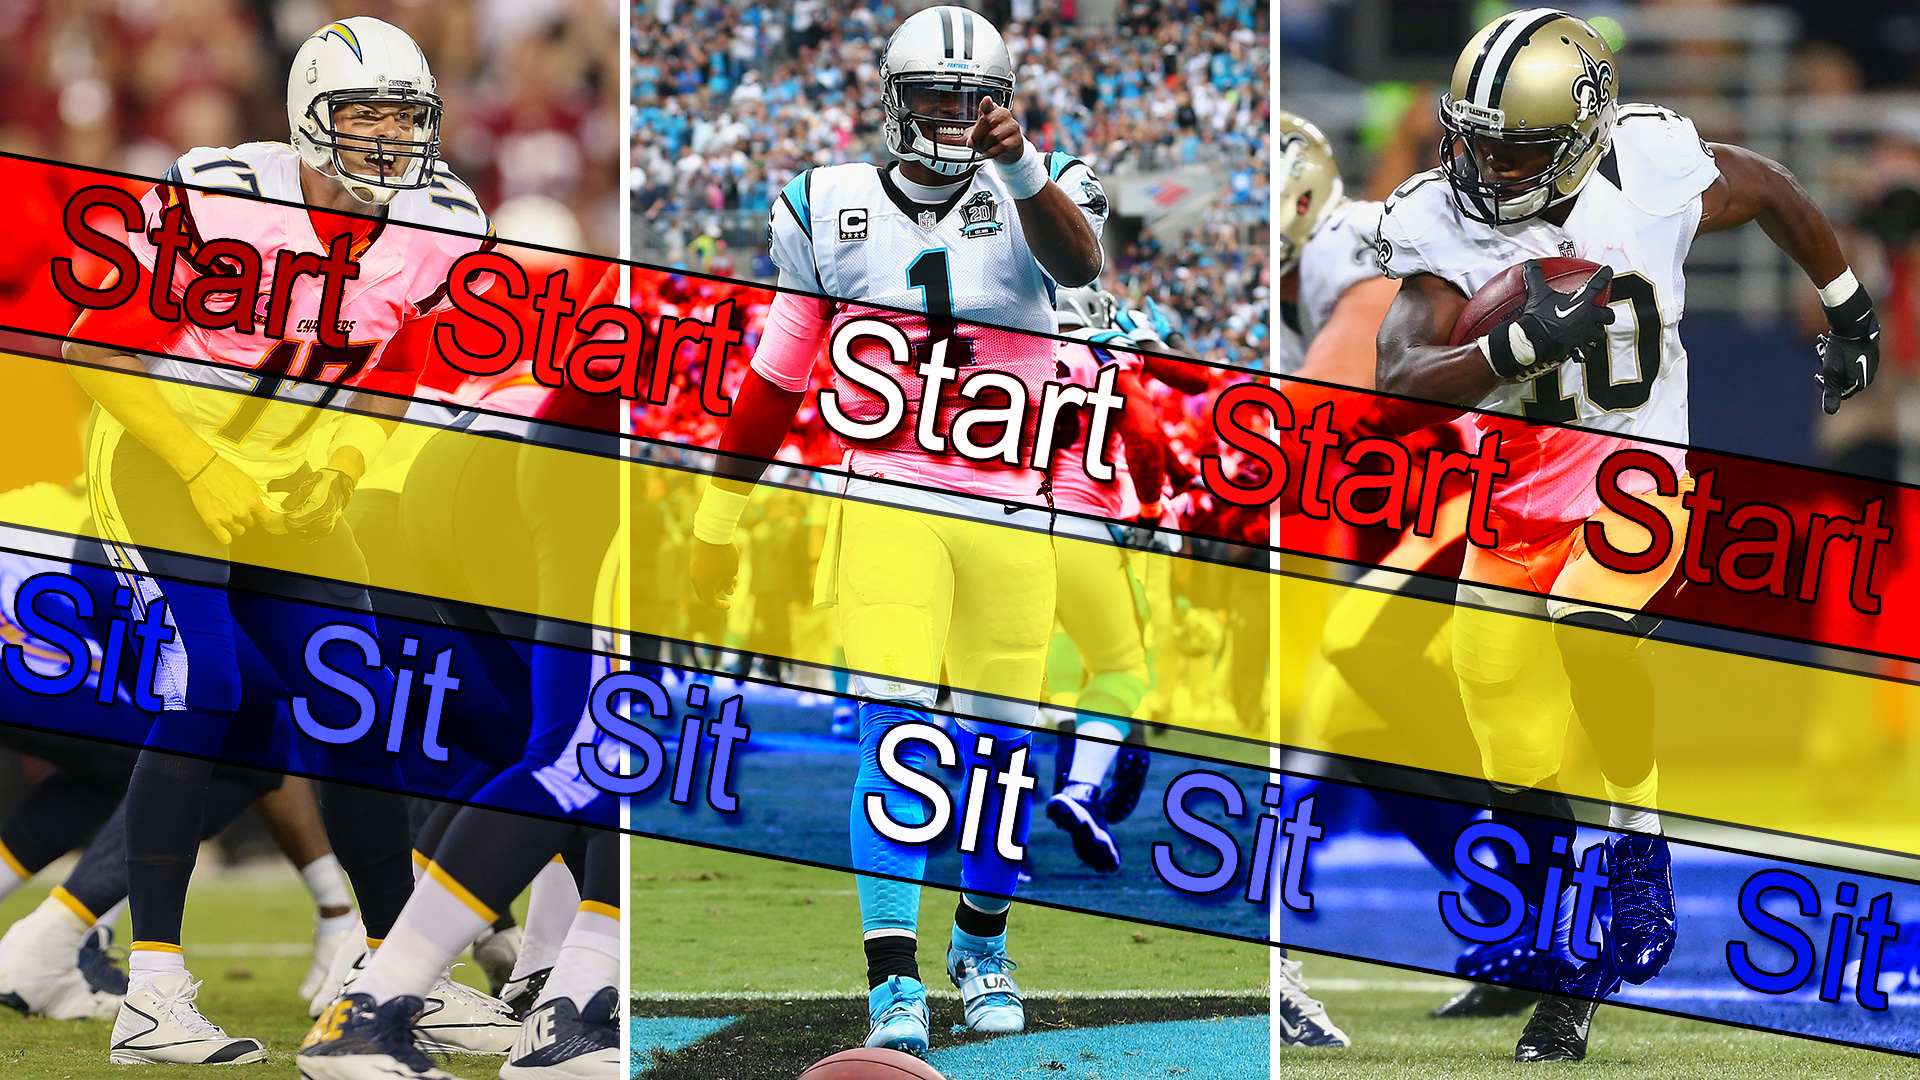 Week 5 fantasy football start/sit chat: 11 a.m. - 1 p.m. ET